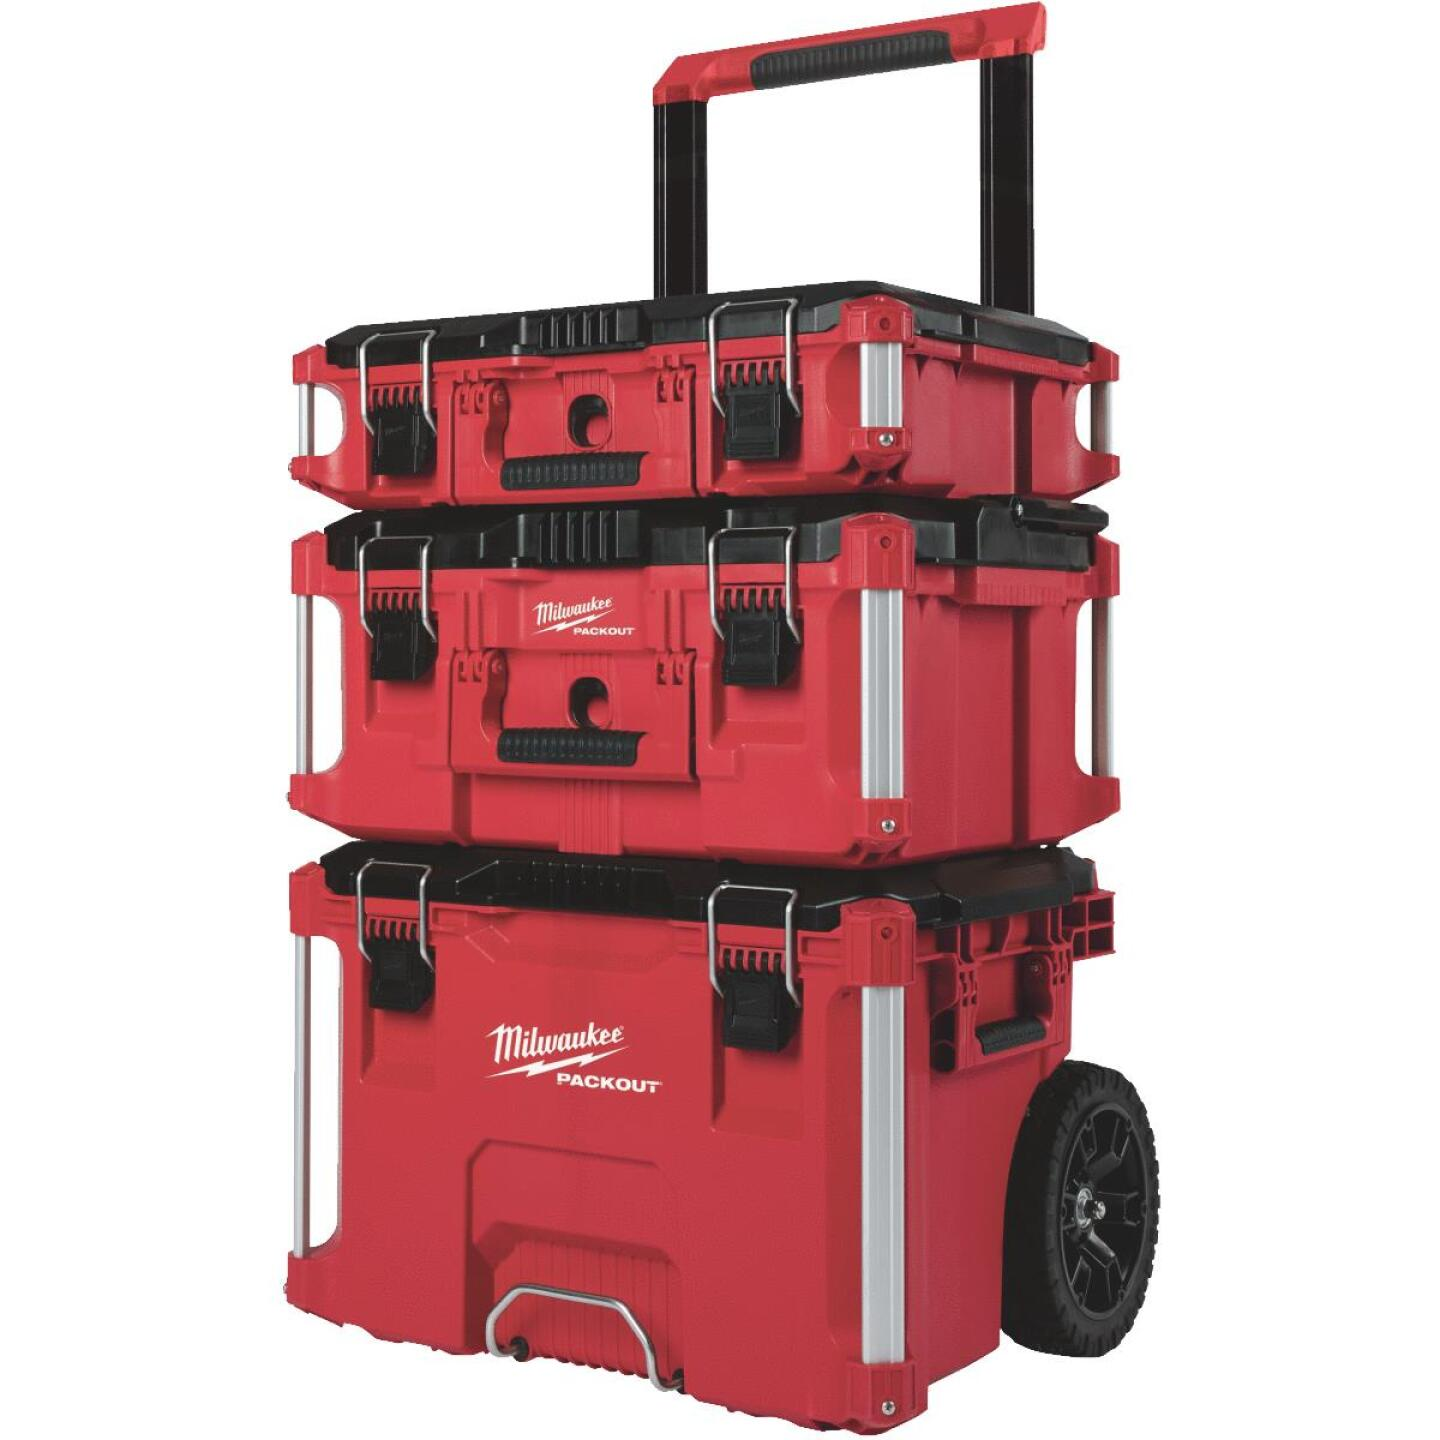 Milwaukee PACKOUT 22 In. Rolling Toolbox Image 2